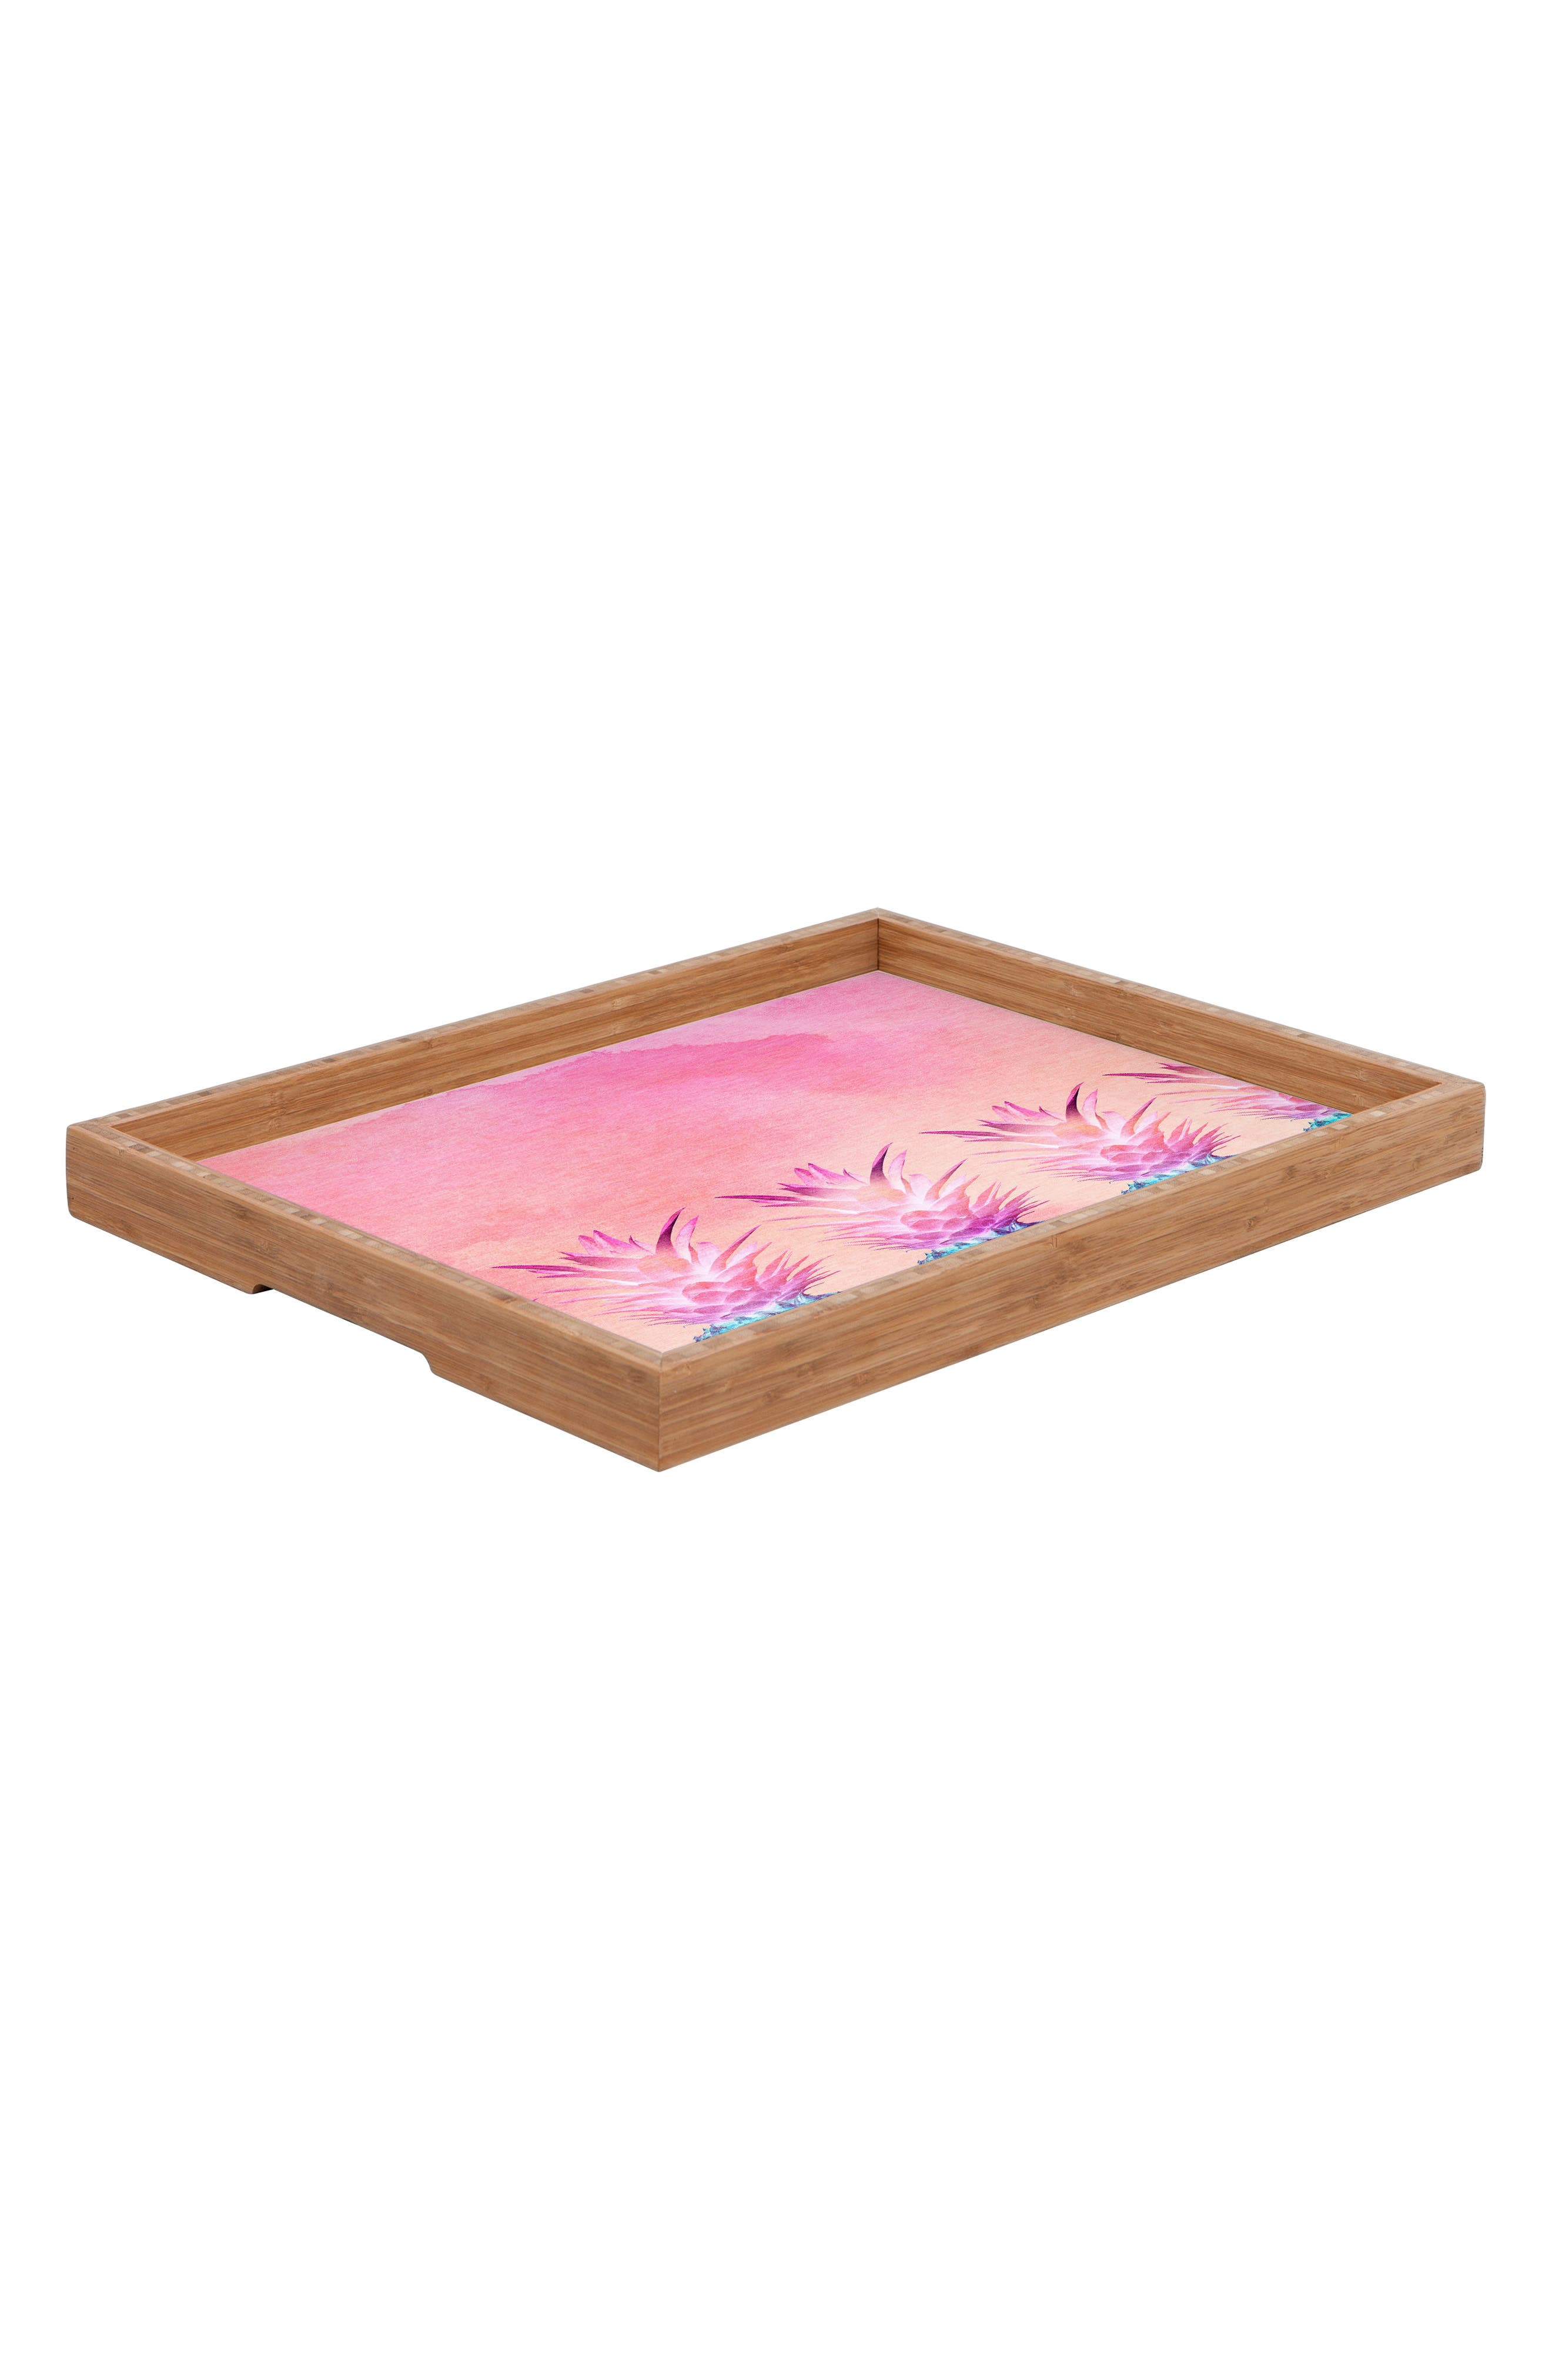 Pineapple Farm Serving Tray,                             Alternate thumbnail 2, color,